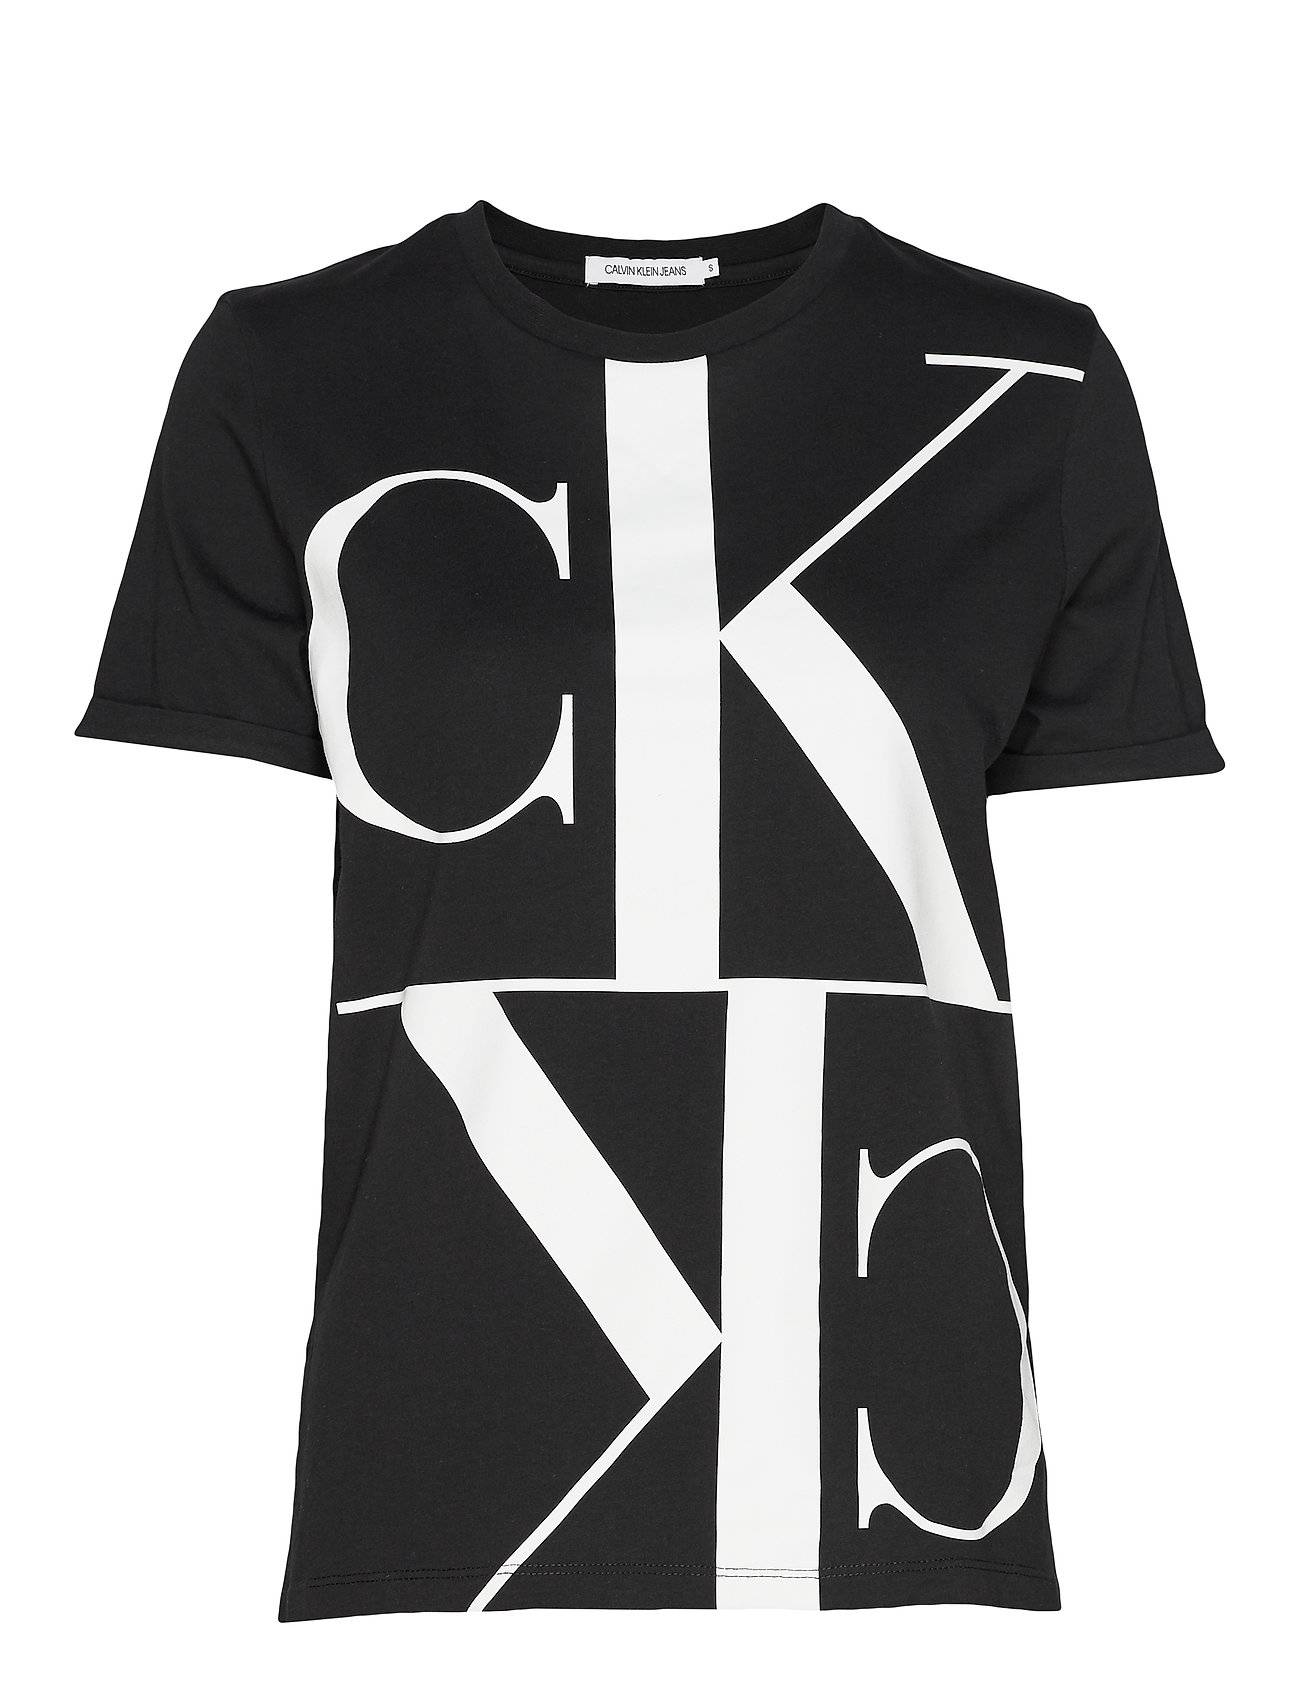 Image of Calvin Mirrored Monogram Straight Tee T-shirts & Tops Short-sleeved Musta Calvin Klein Jeans